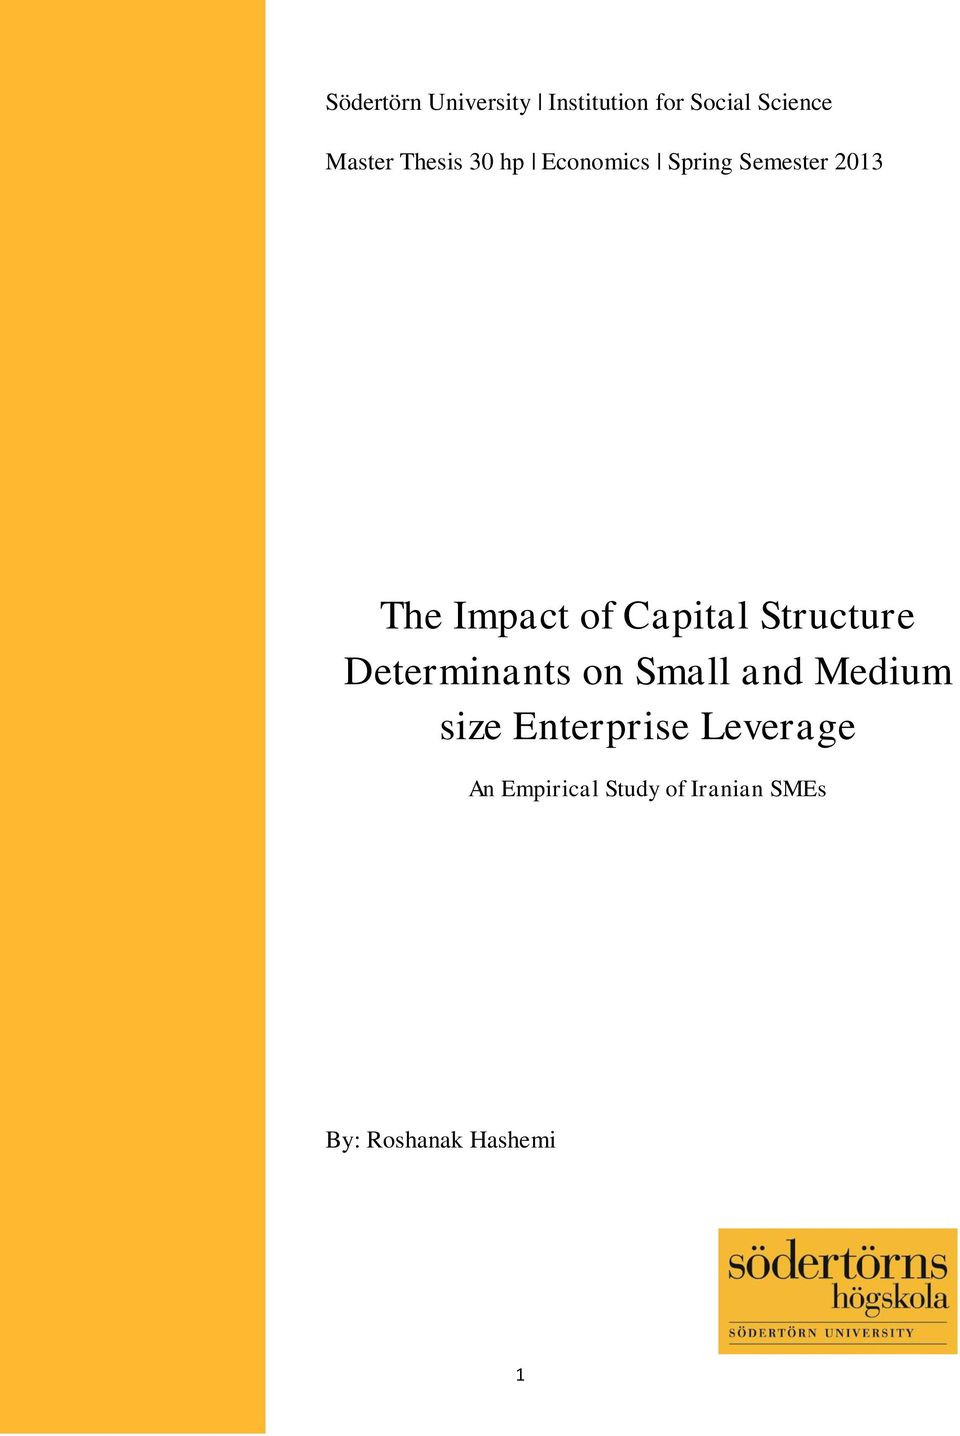 Capital Structure Determinants on Small and Medium size